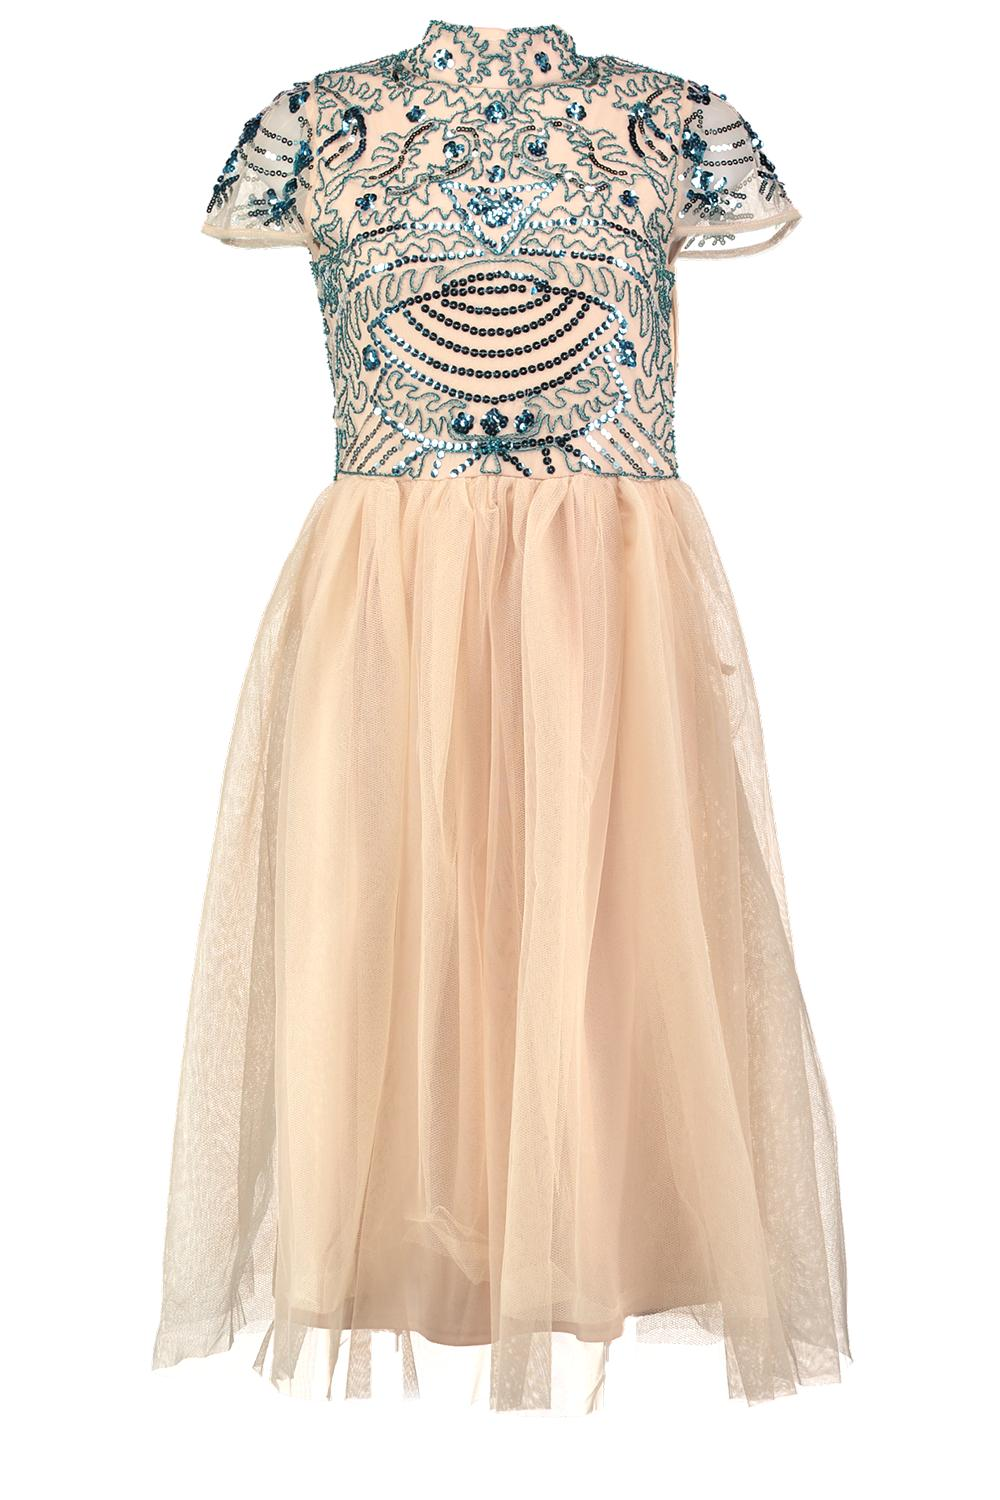 Boohoo Womens Boutique Ely Embellished Top Tutu Skirt